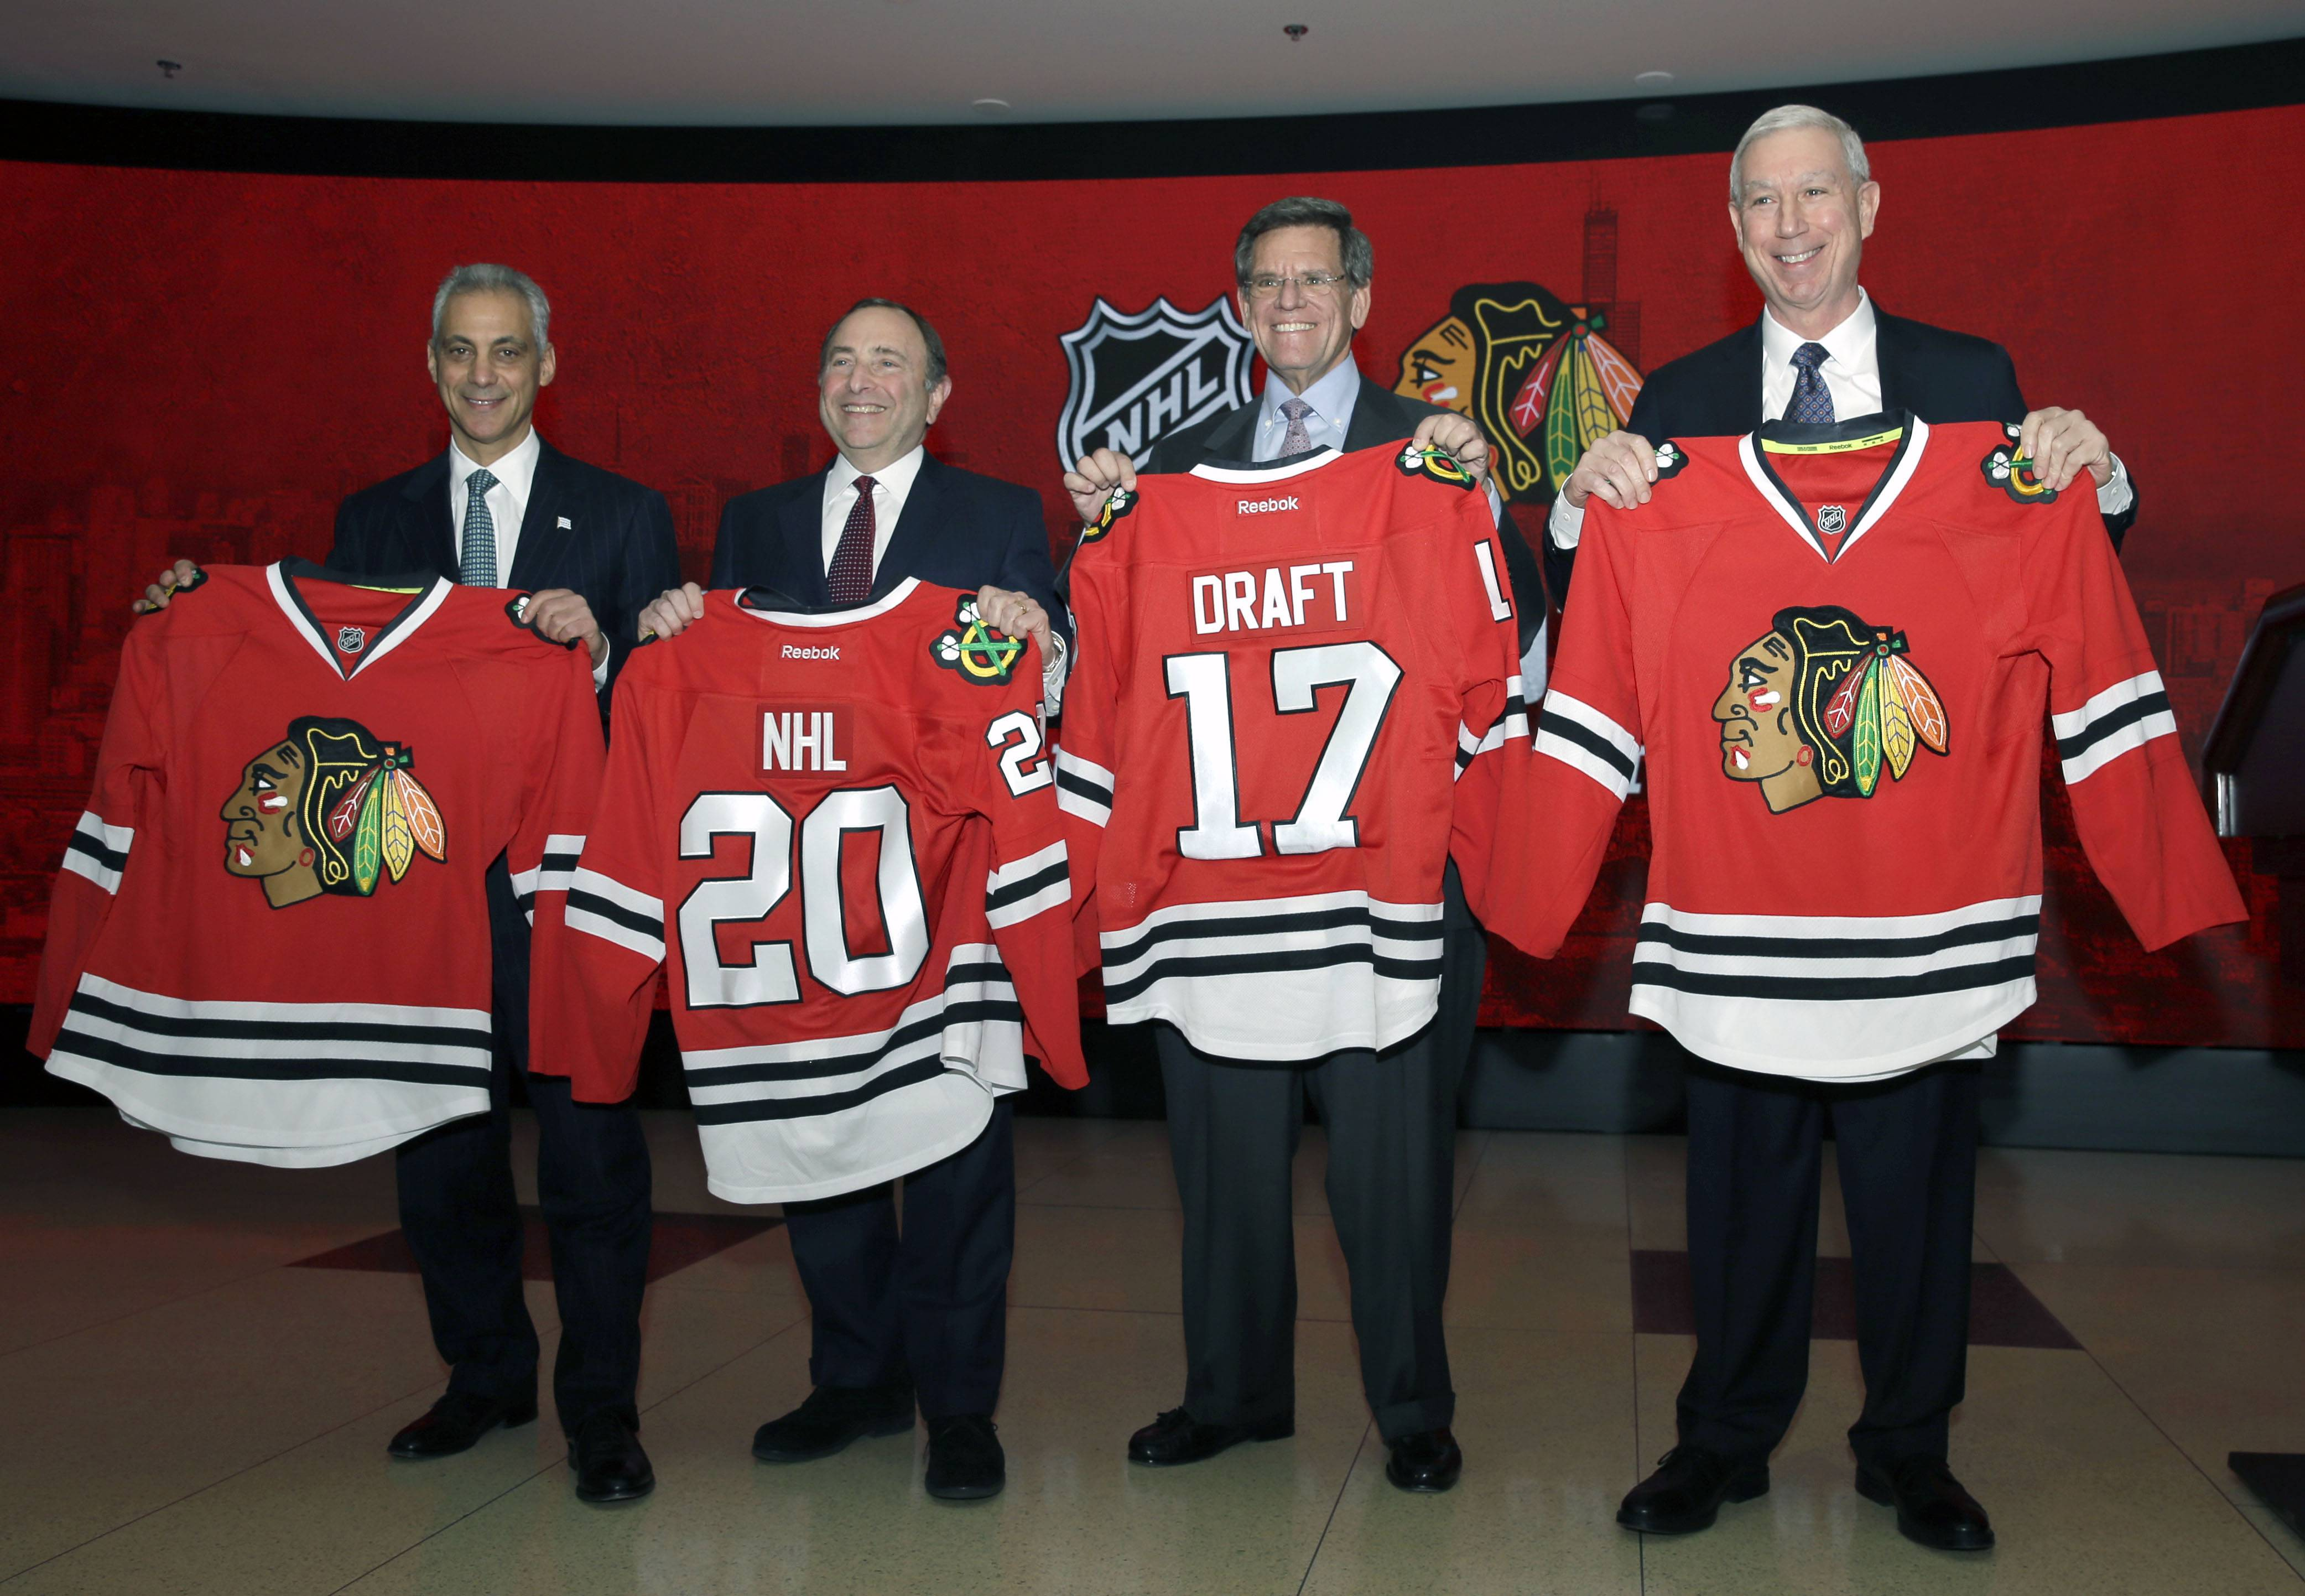 Left to right, Chicago Mayor Rahm Emanuel, NHL Commissioner Gary Bettman, Chicago Blackhawks Chairman Rocky Wirtz and Chicago Blackhawks President John McDonough hold jerseys during a special announcement by the NHL at a news conference Thursday, Feb. 11, 2016, in Chicago. The Chicago Blackhawks will host the 2017 NHL Draft at United Center. The Draft will be held over two days, Friday, June 23, and Saturday, June 24, 2017.